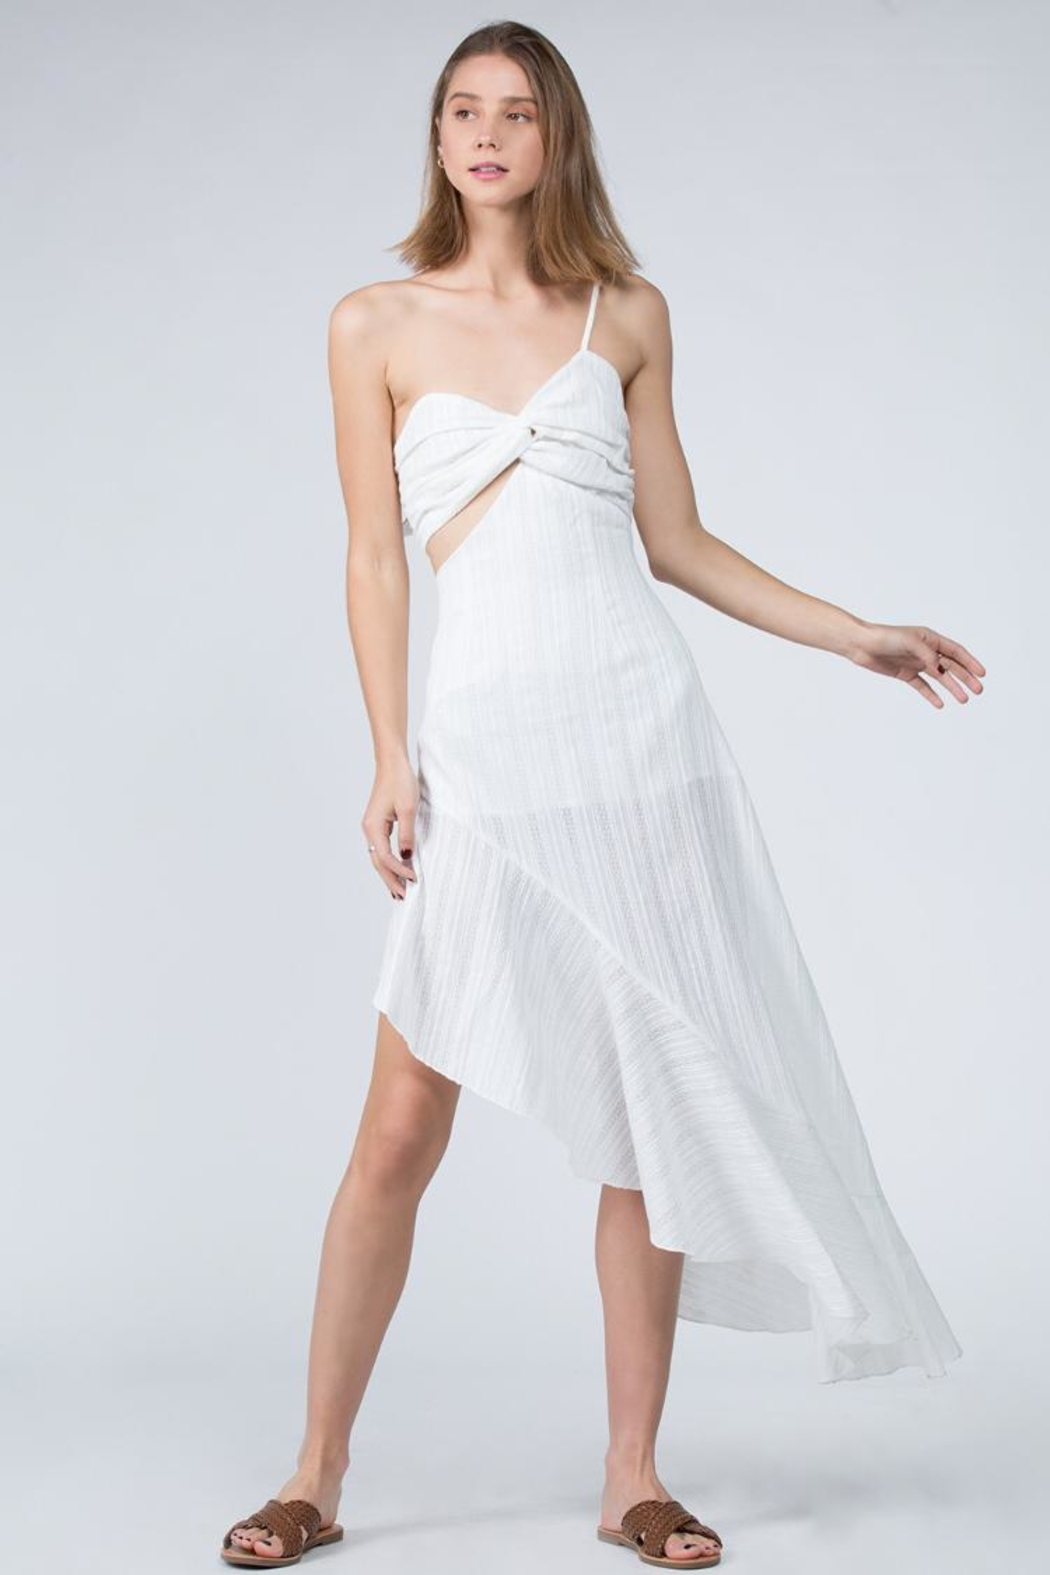 FANCO Asymmetrical Dress - Main Image